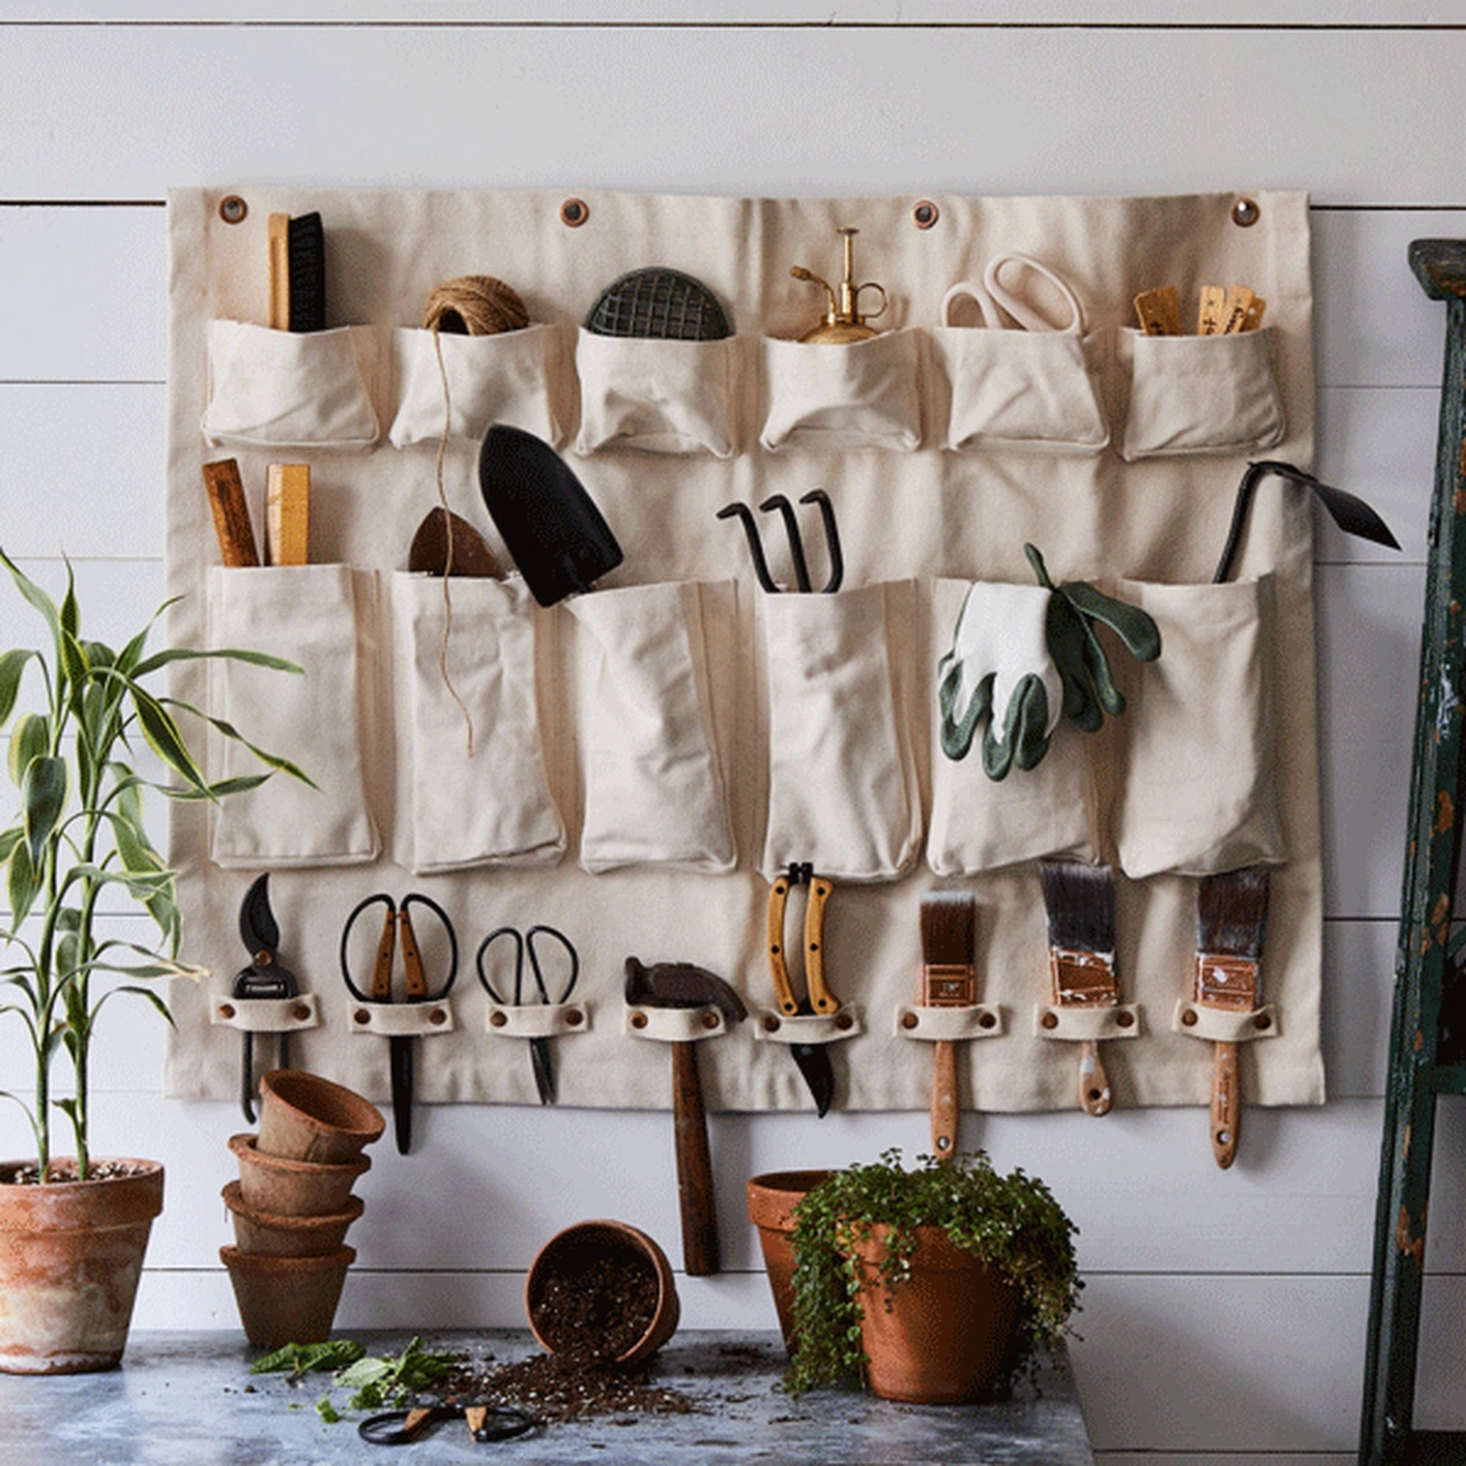 Floral Society's heavy-gauge cotton Multi-Purpose Canvas Wall Organizer features 20 compartments and measures 36 by 28 inches; $112 on Food52. (It's also sold on the Floral Society website.)